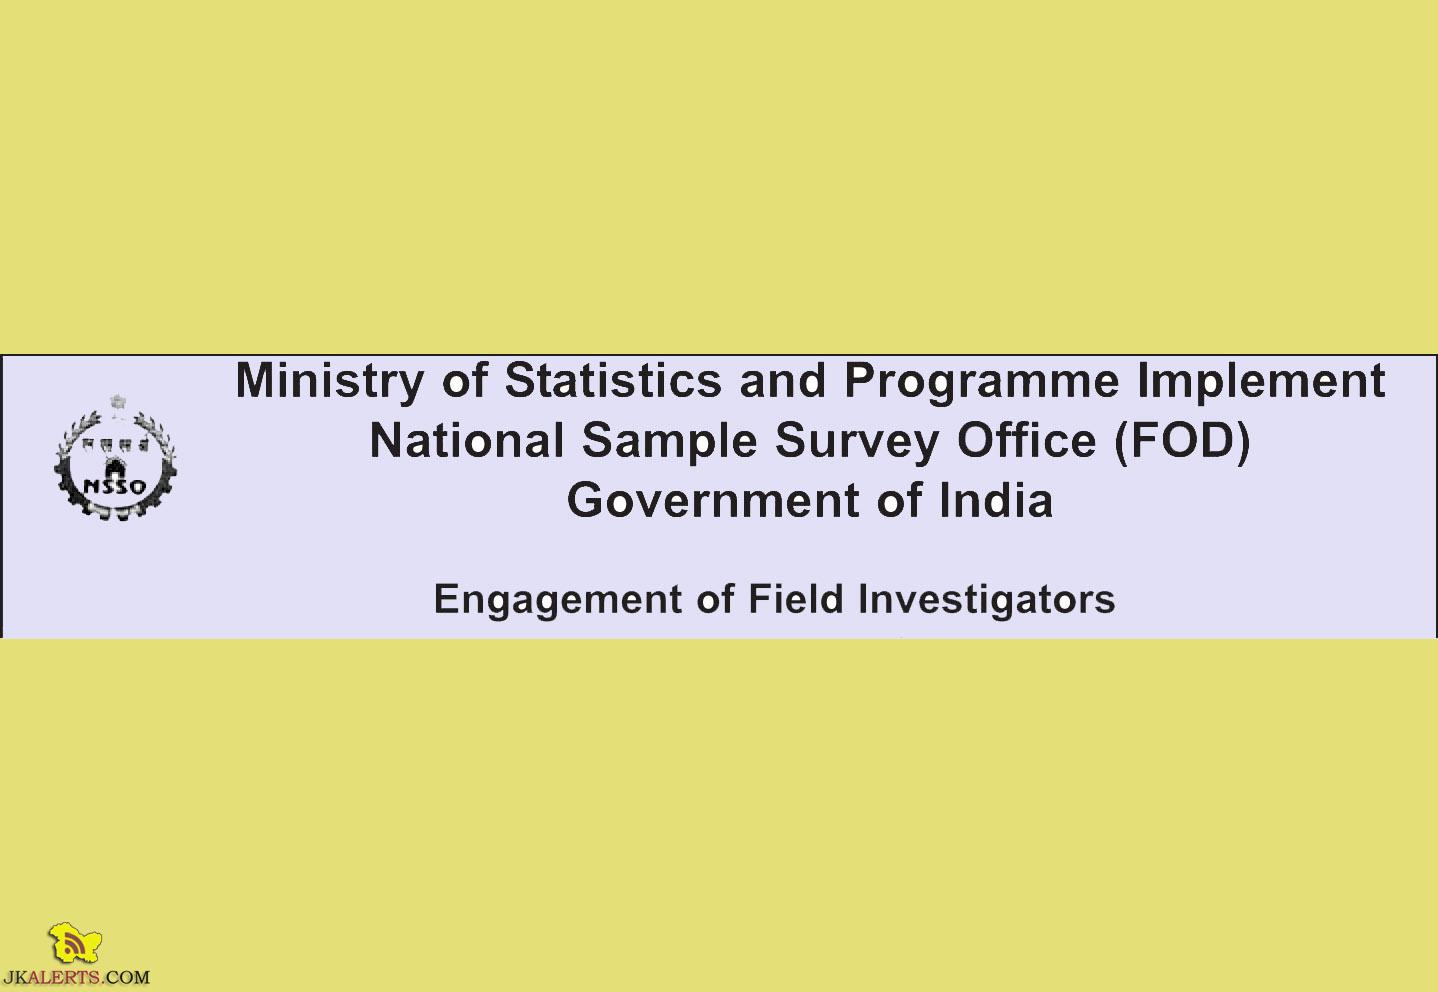 Field Investigators Jobs in National Sample Survey Office (FOD) Government of India